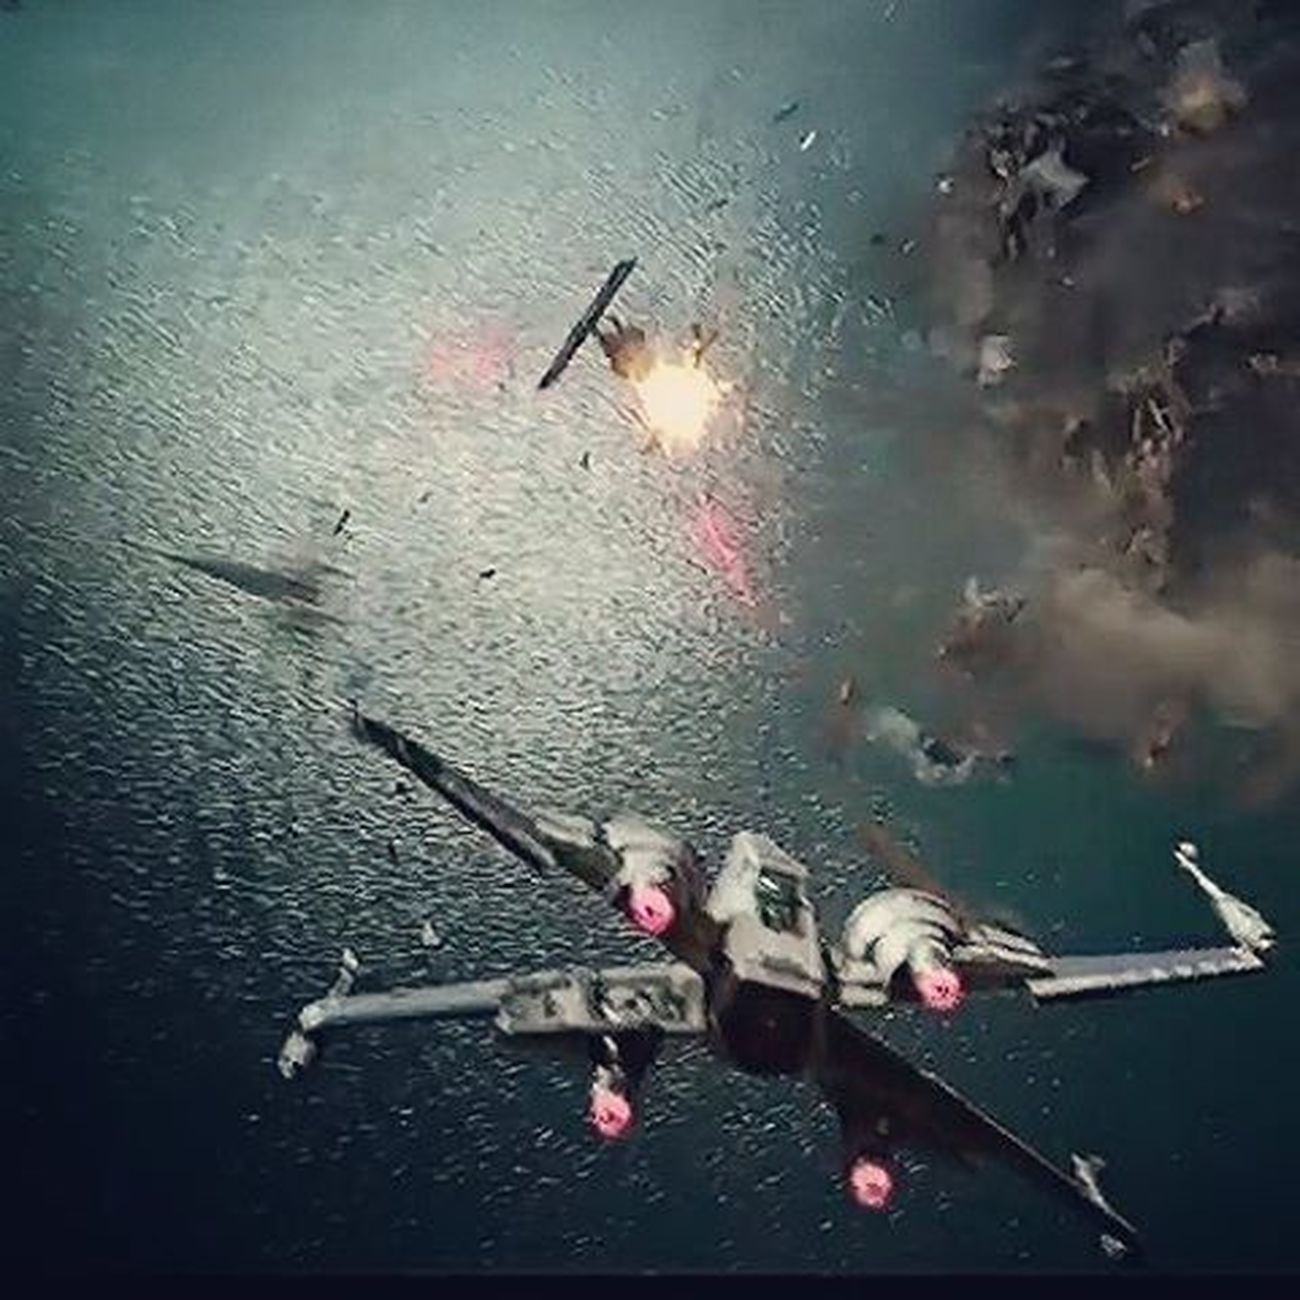 There are already iconic scenes just from the trailer and a massive dogfight between x-wings and tie fighters is a big one for me! The anticipation is making me want to pee! Swtfa Starwars Episode7 Tiefighter Xwingfighter Afosw Needtogopee